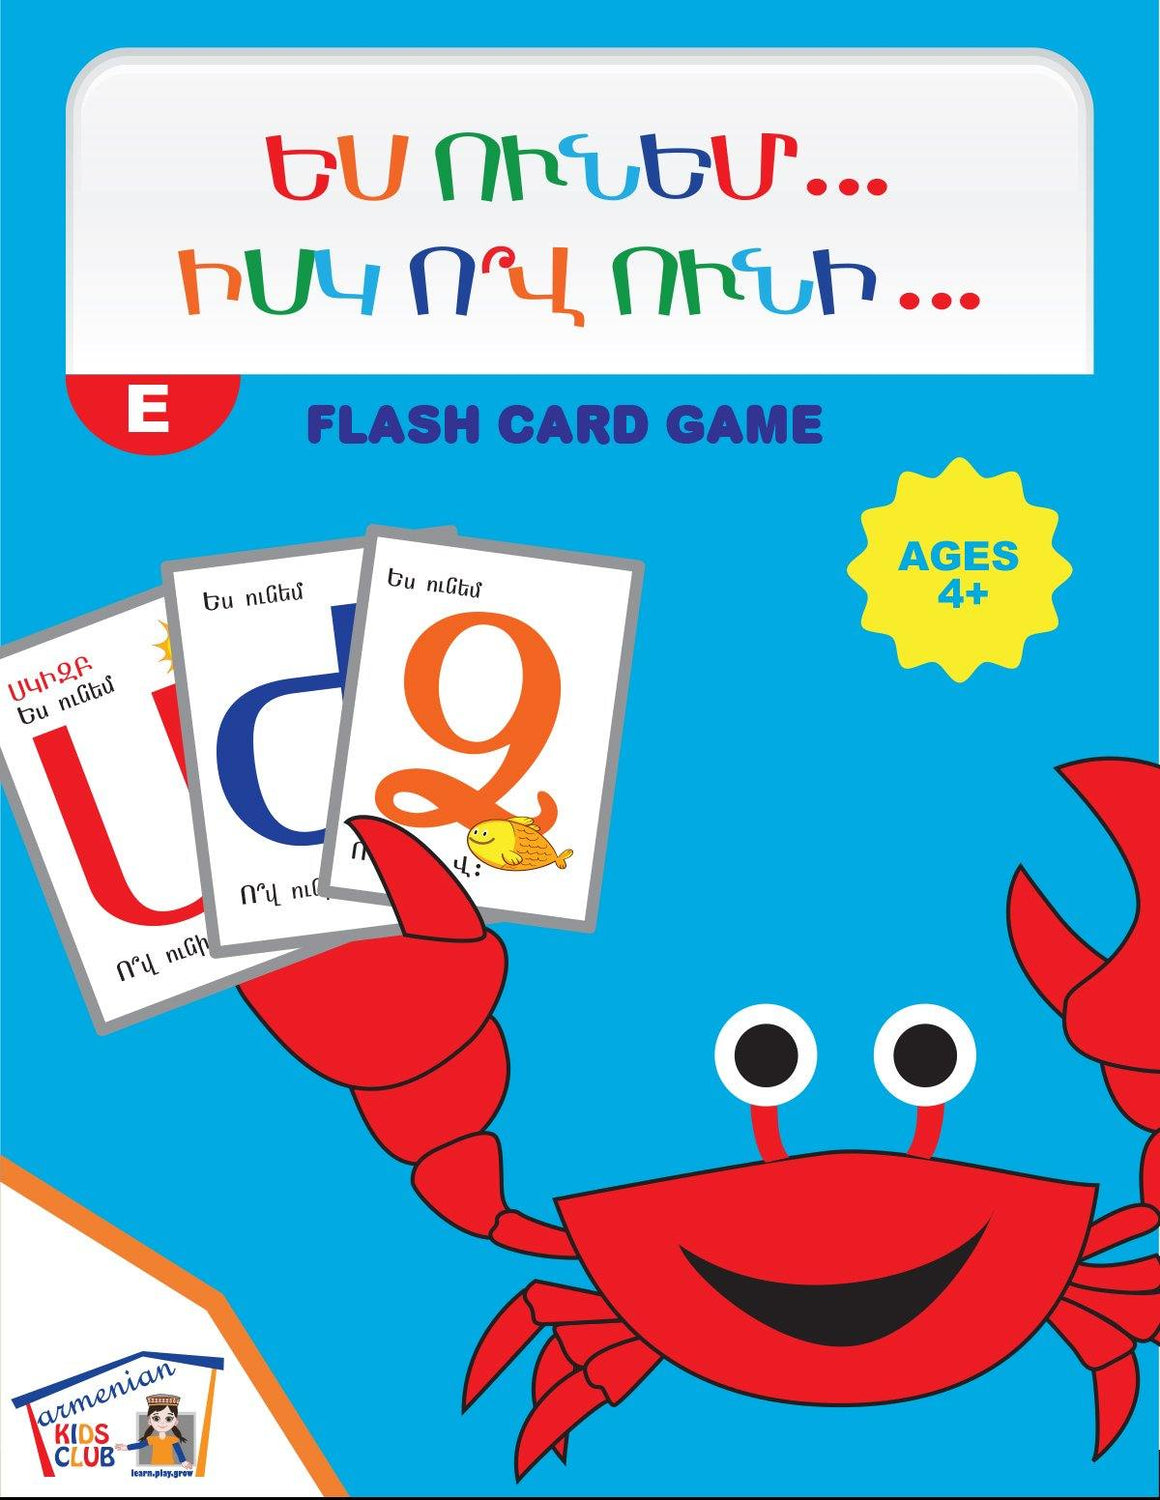 Armenian alphabet flashcard game cover page showing a smiling, red crab holding few flashcards.